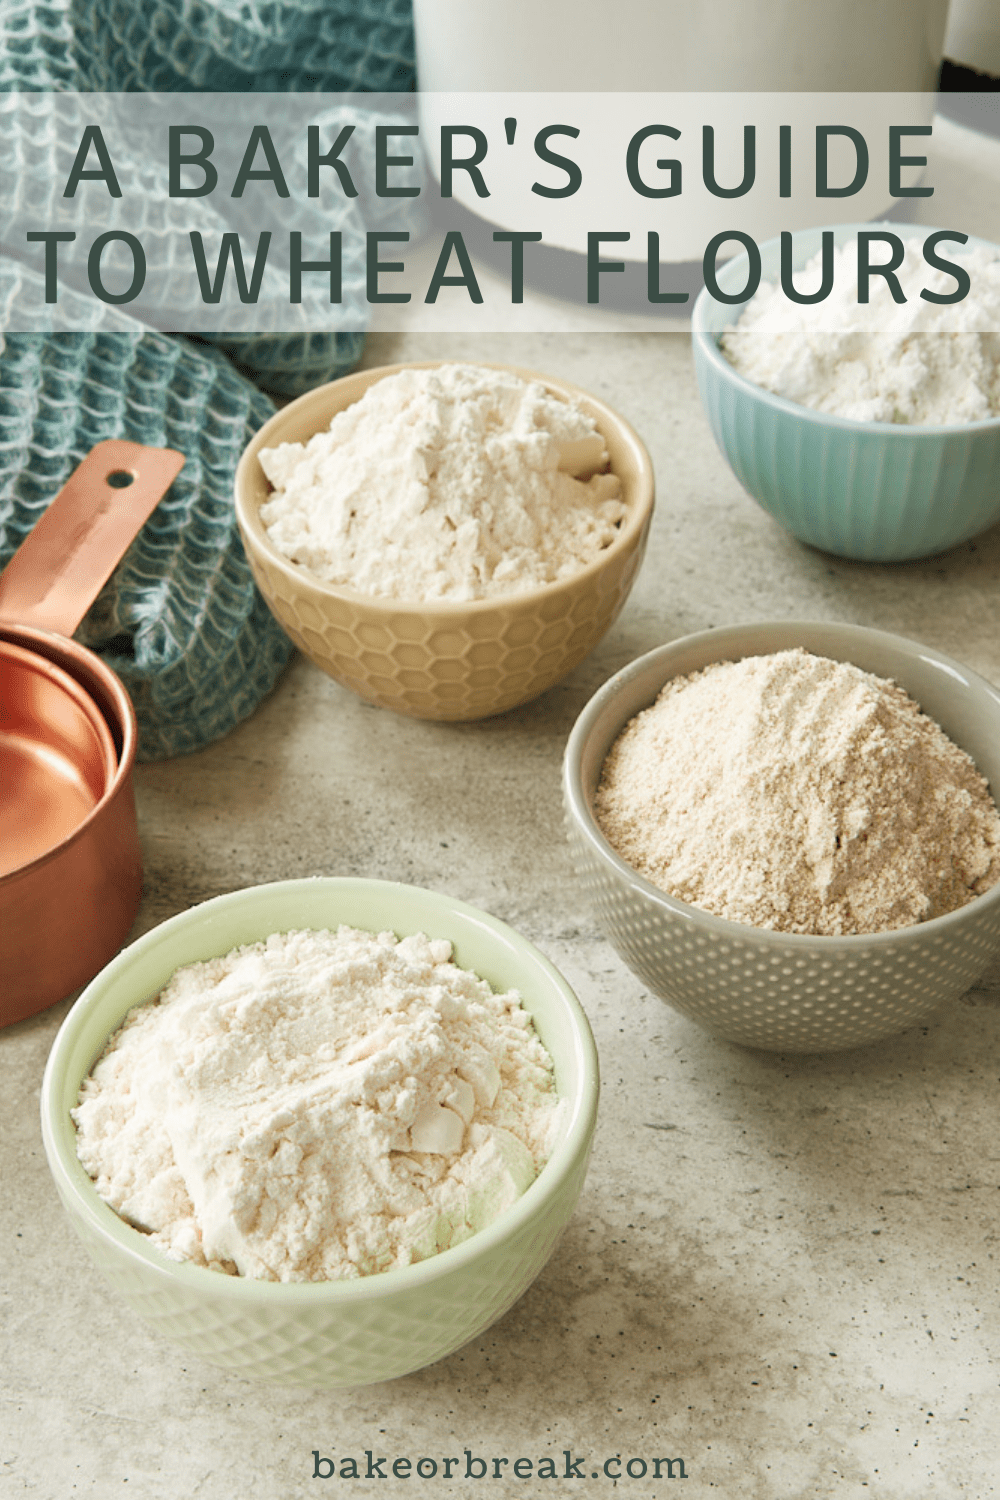 A Baker's Guide to Wheat Flours bakeorbreak.com